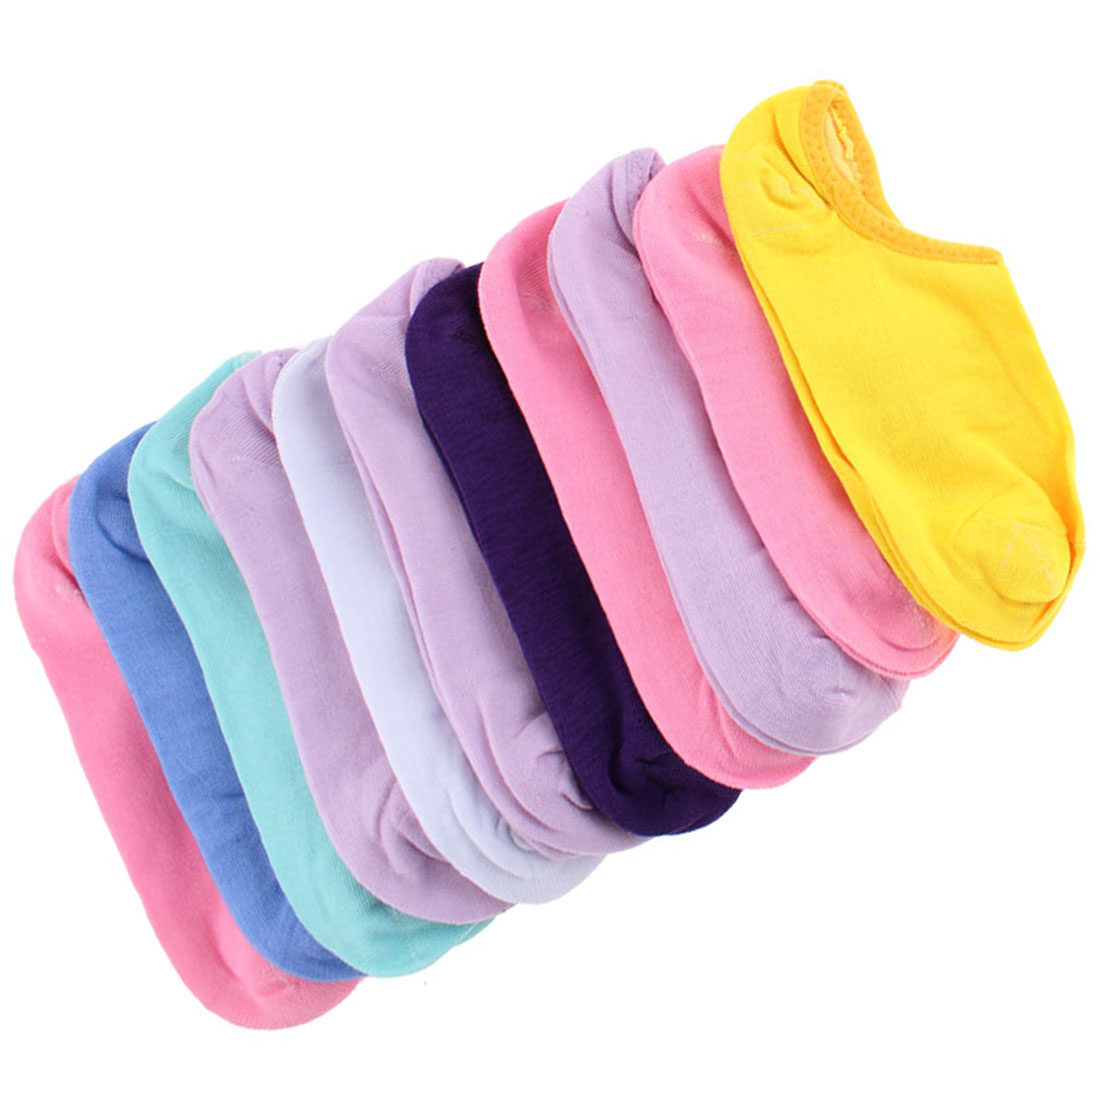 Lady Cotton Blends Pure Pattern Elastic Low Cut Boat Socks Multicolor 12 Pairs